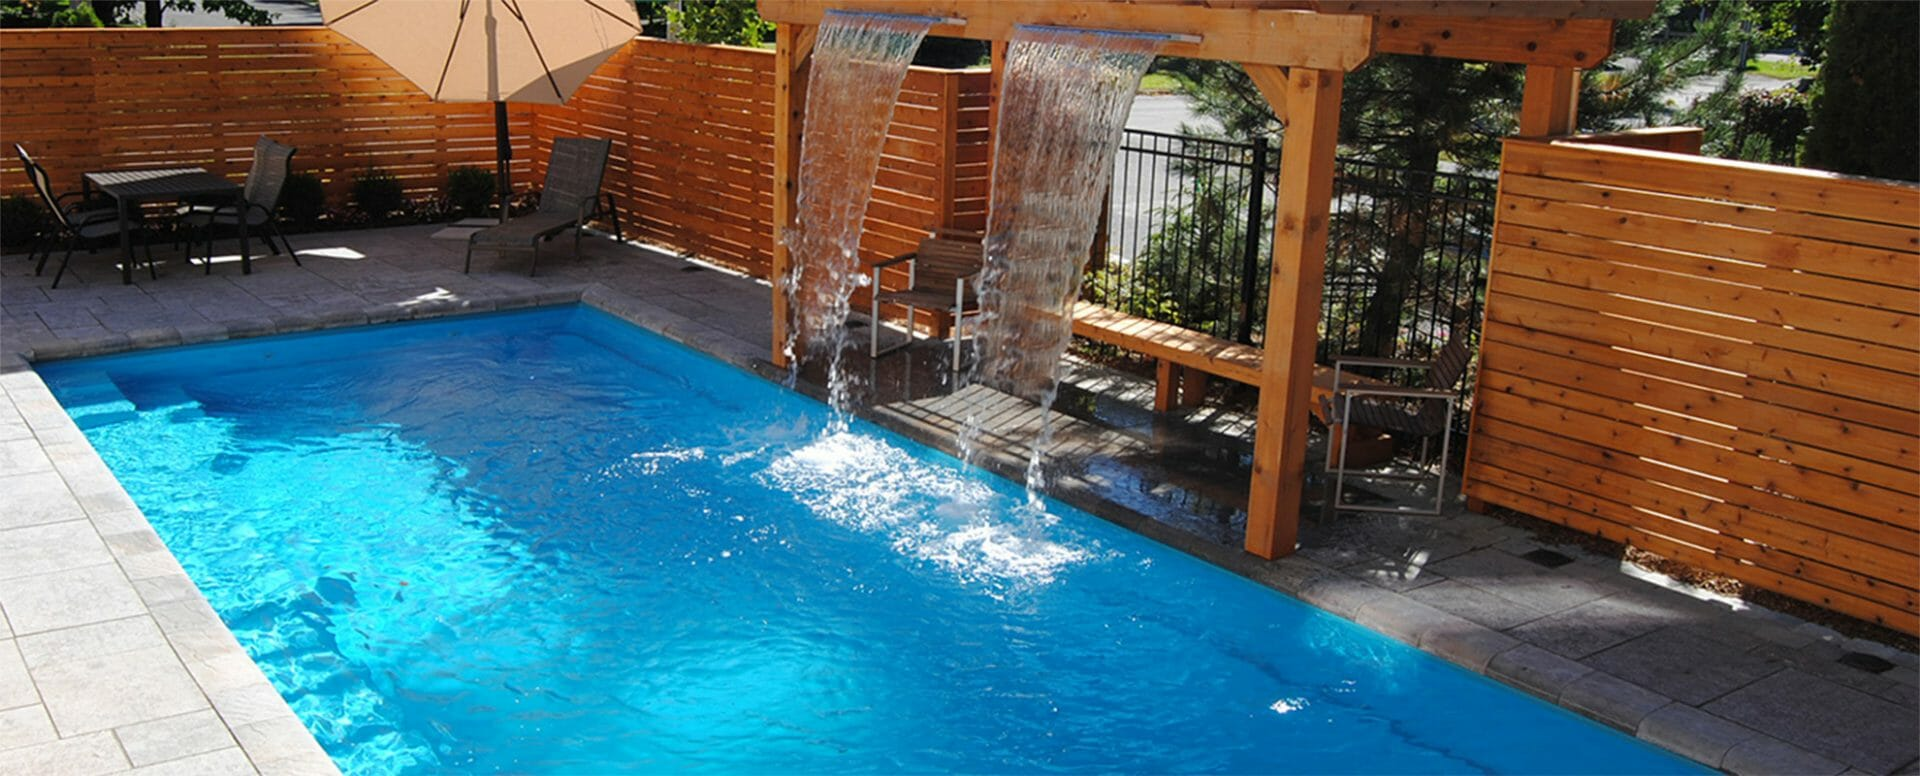 Fibreglass pool with water feature, coping, and cedar pergola and fence by Leisure Pools